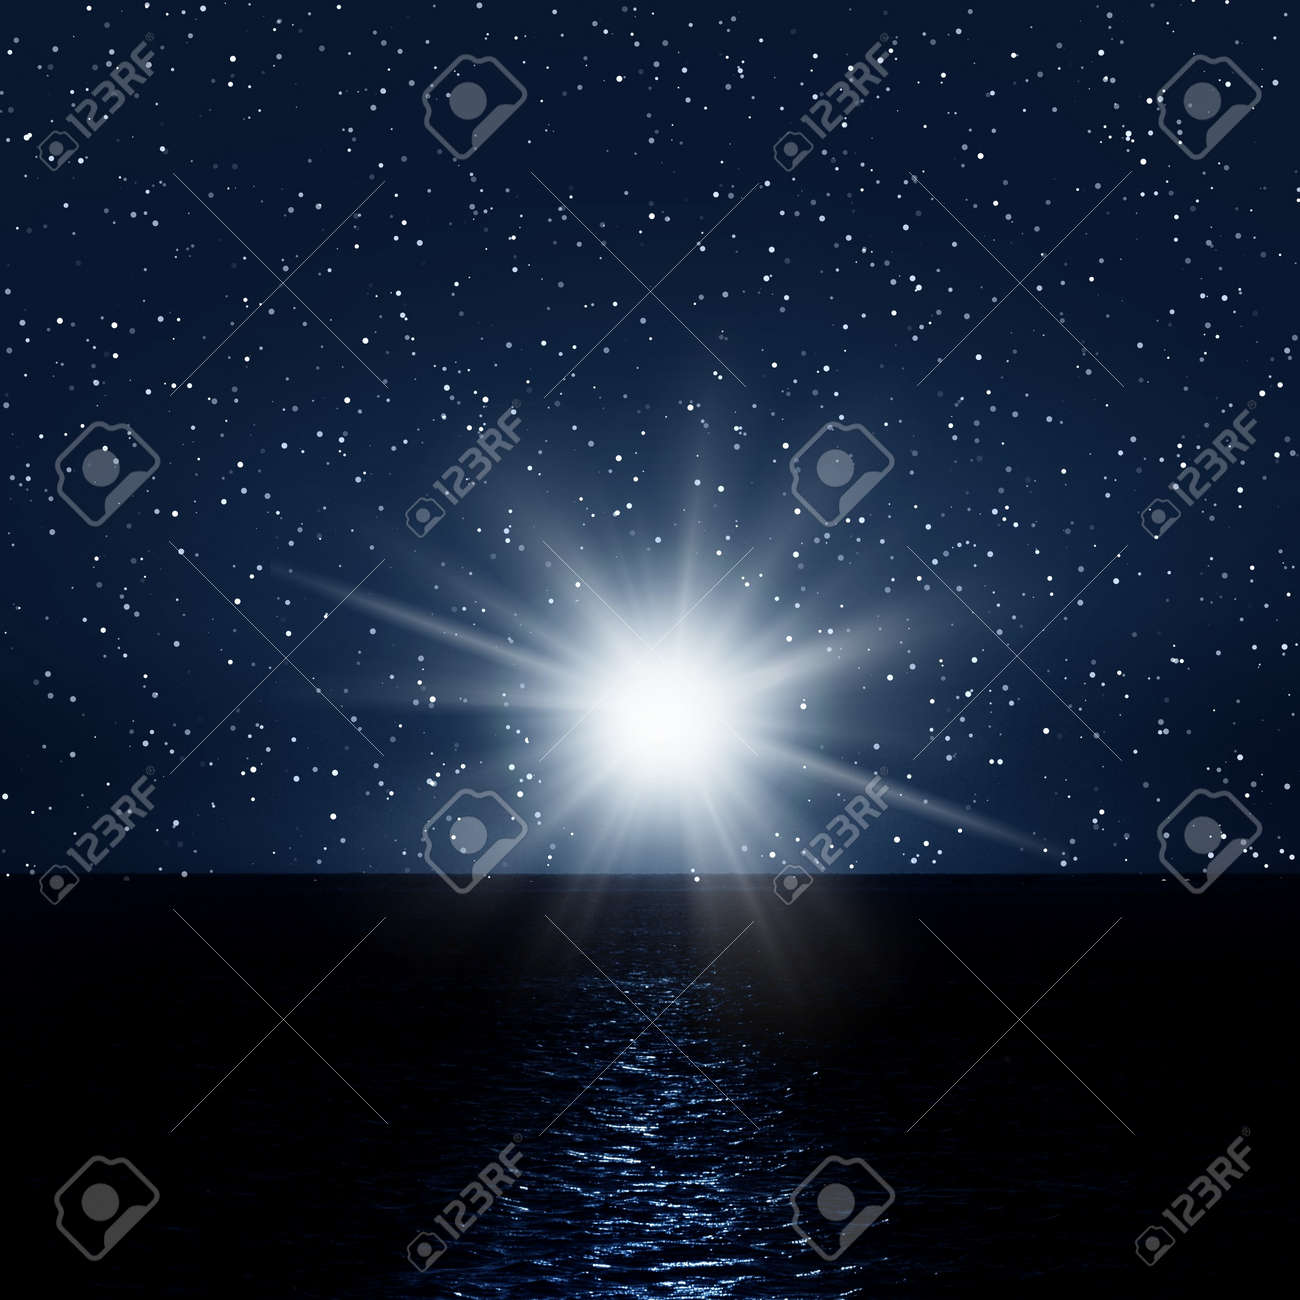 Night picture with sea and sky Stock Photo - 6934786